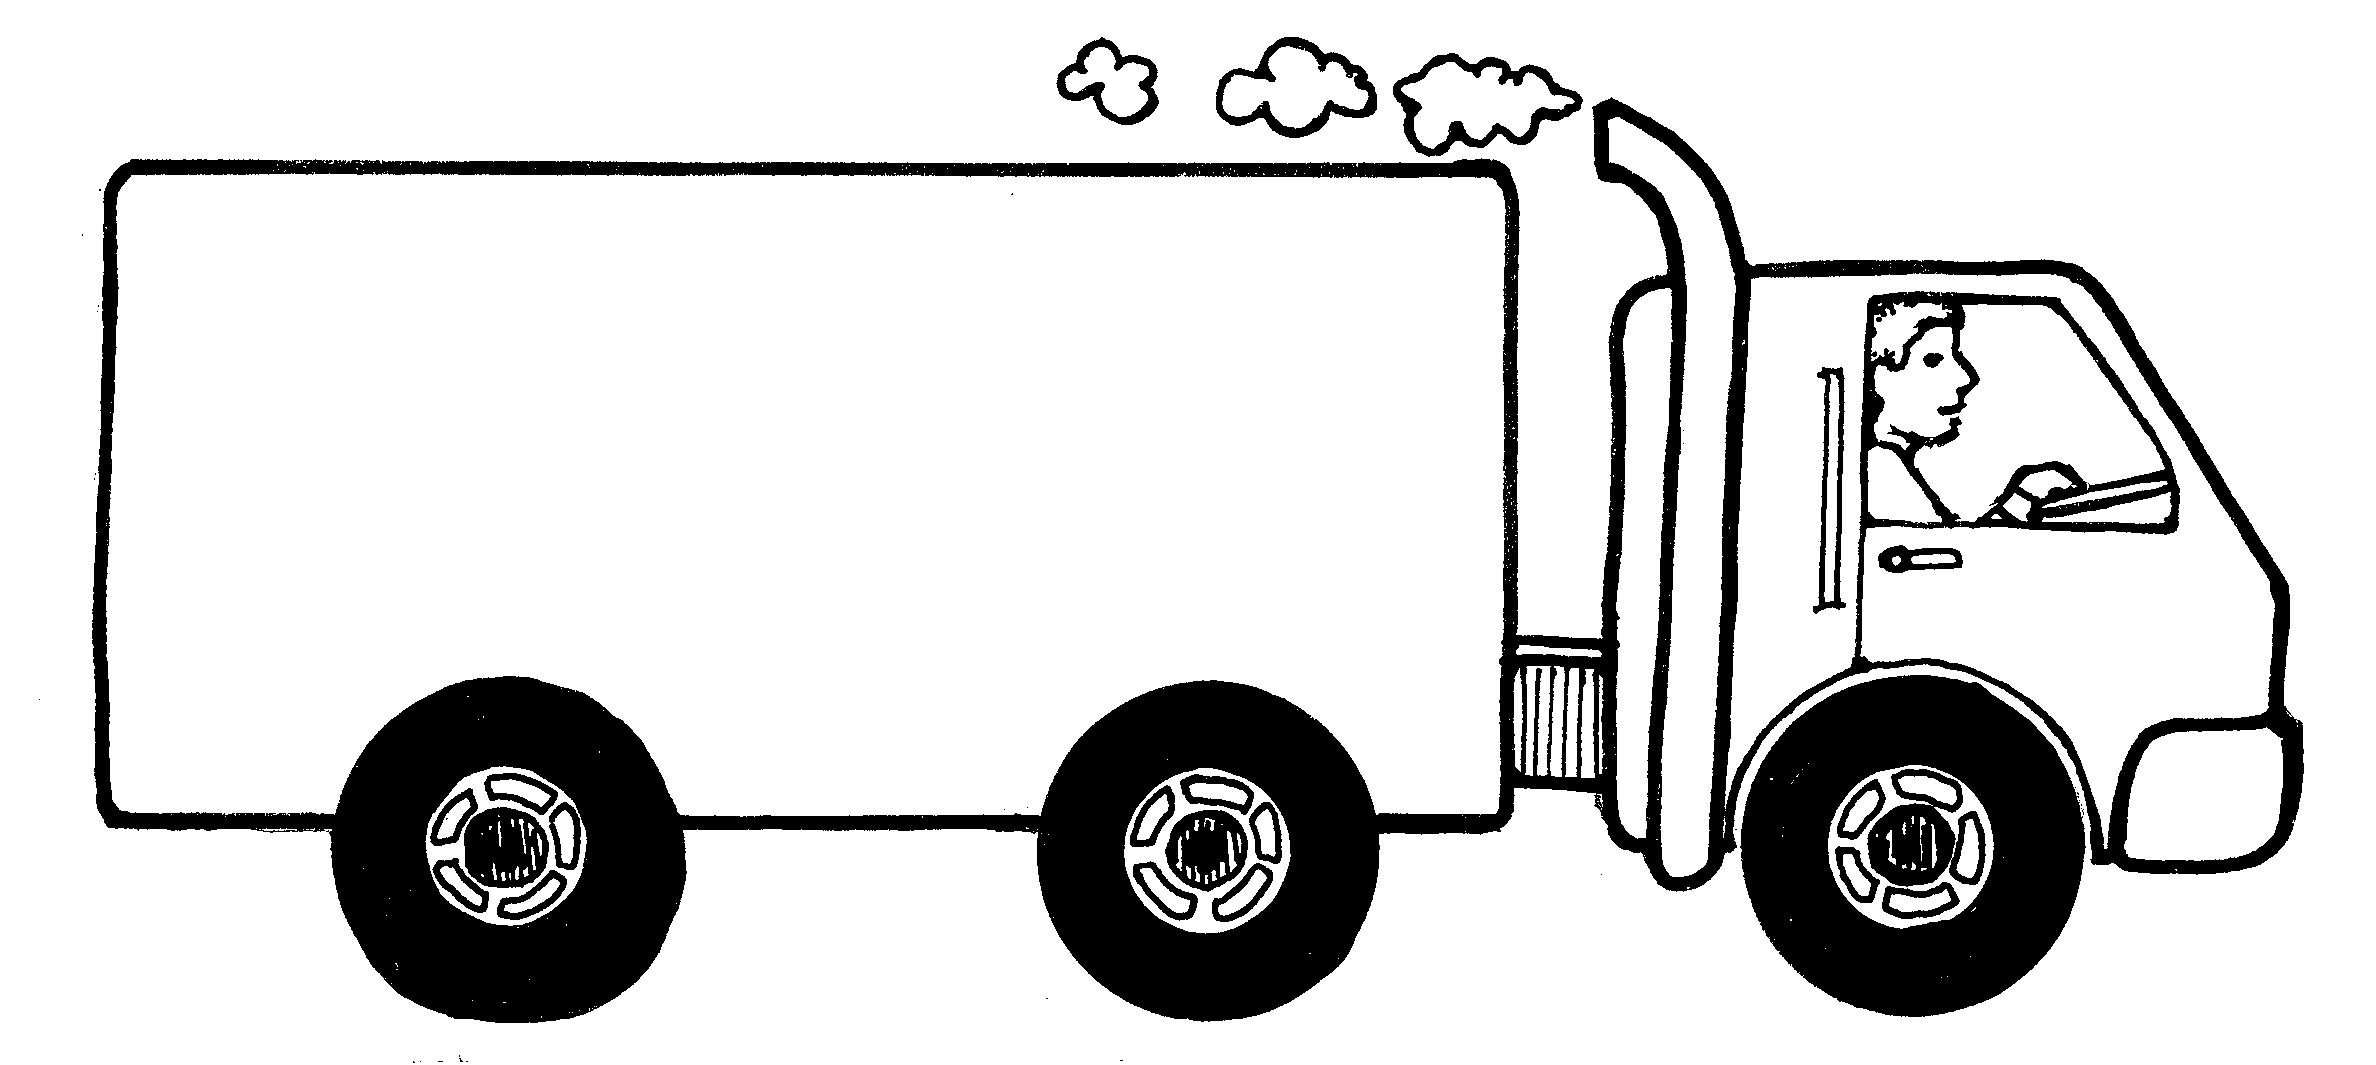 Moving Van Clipart Black and .